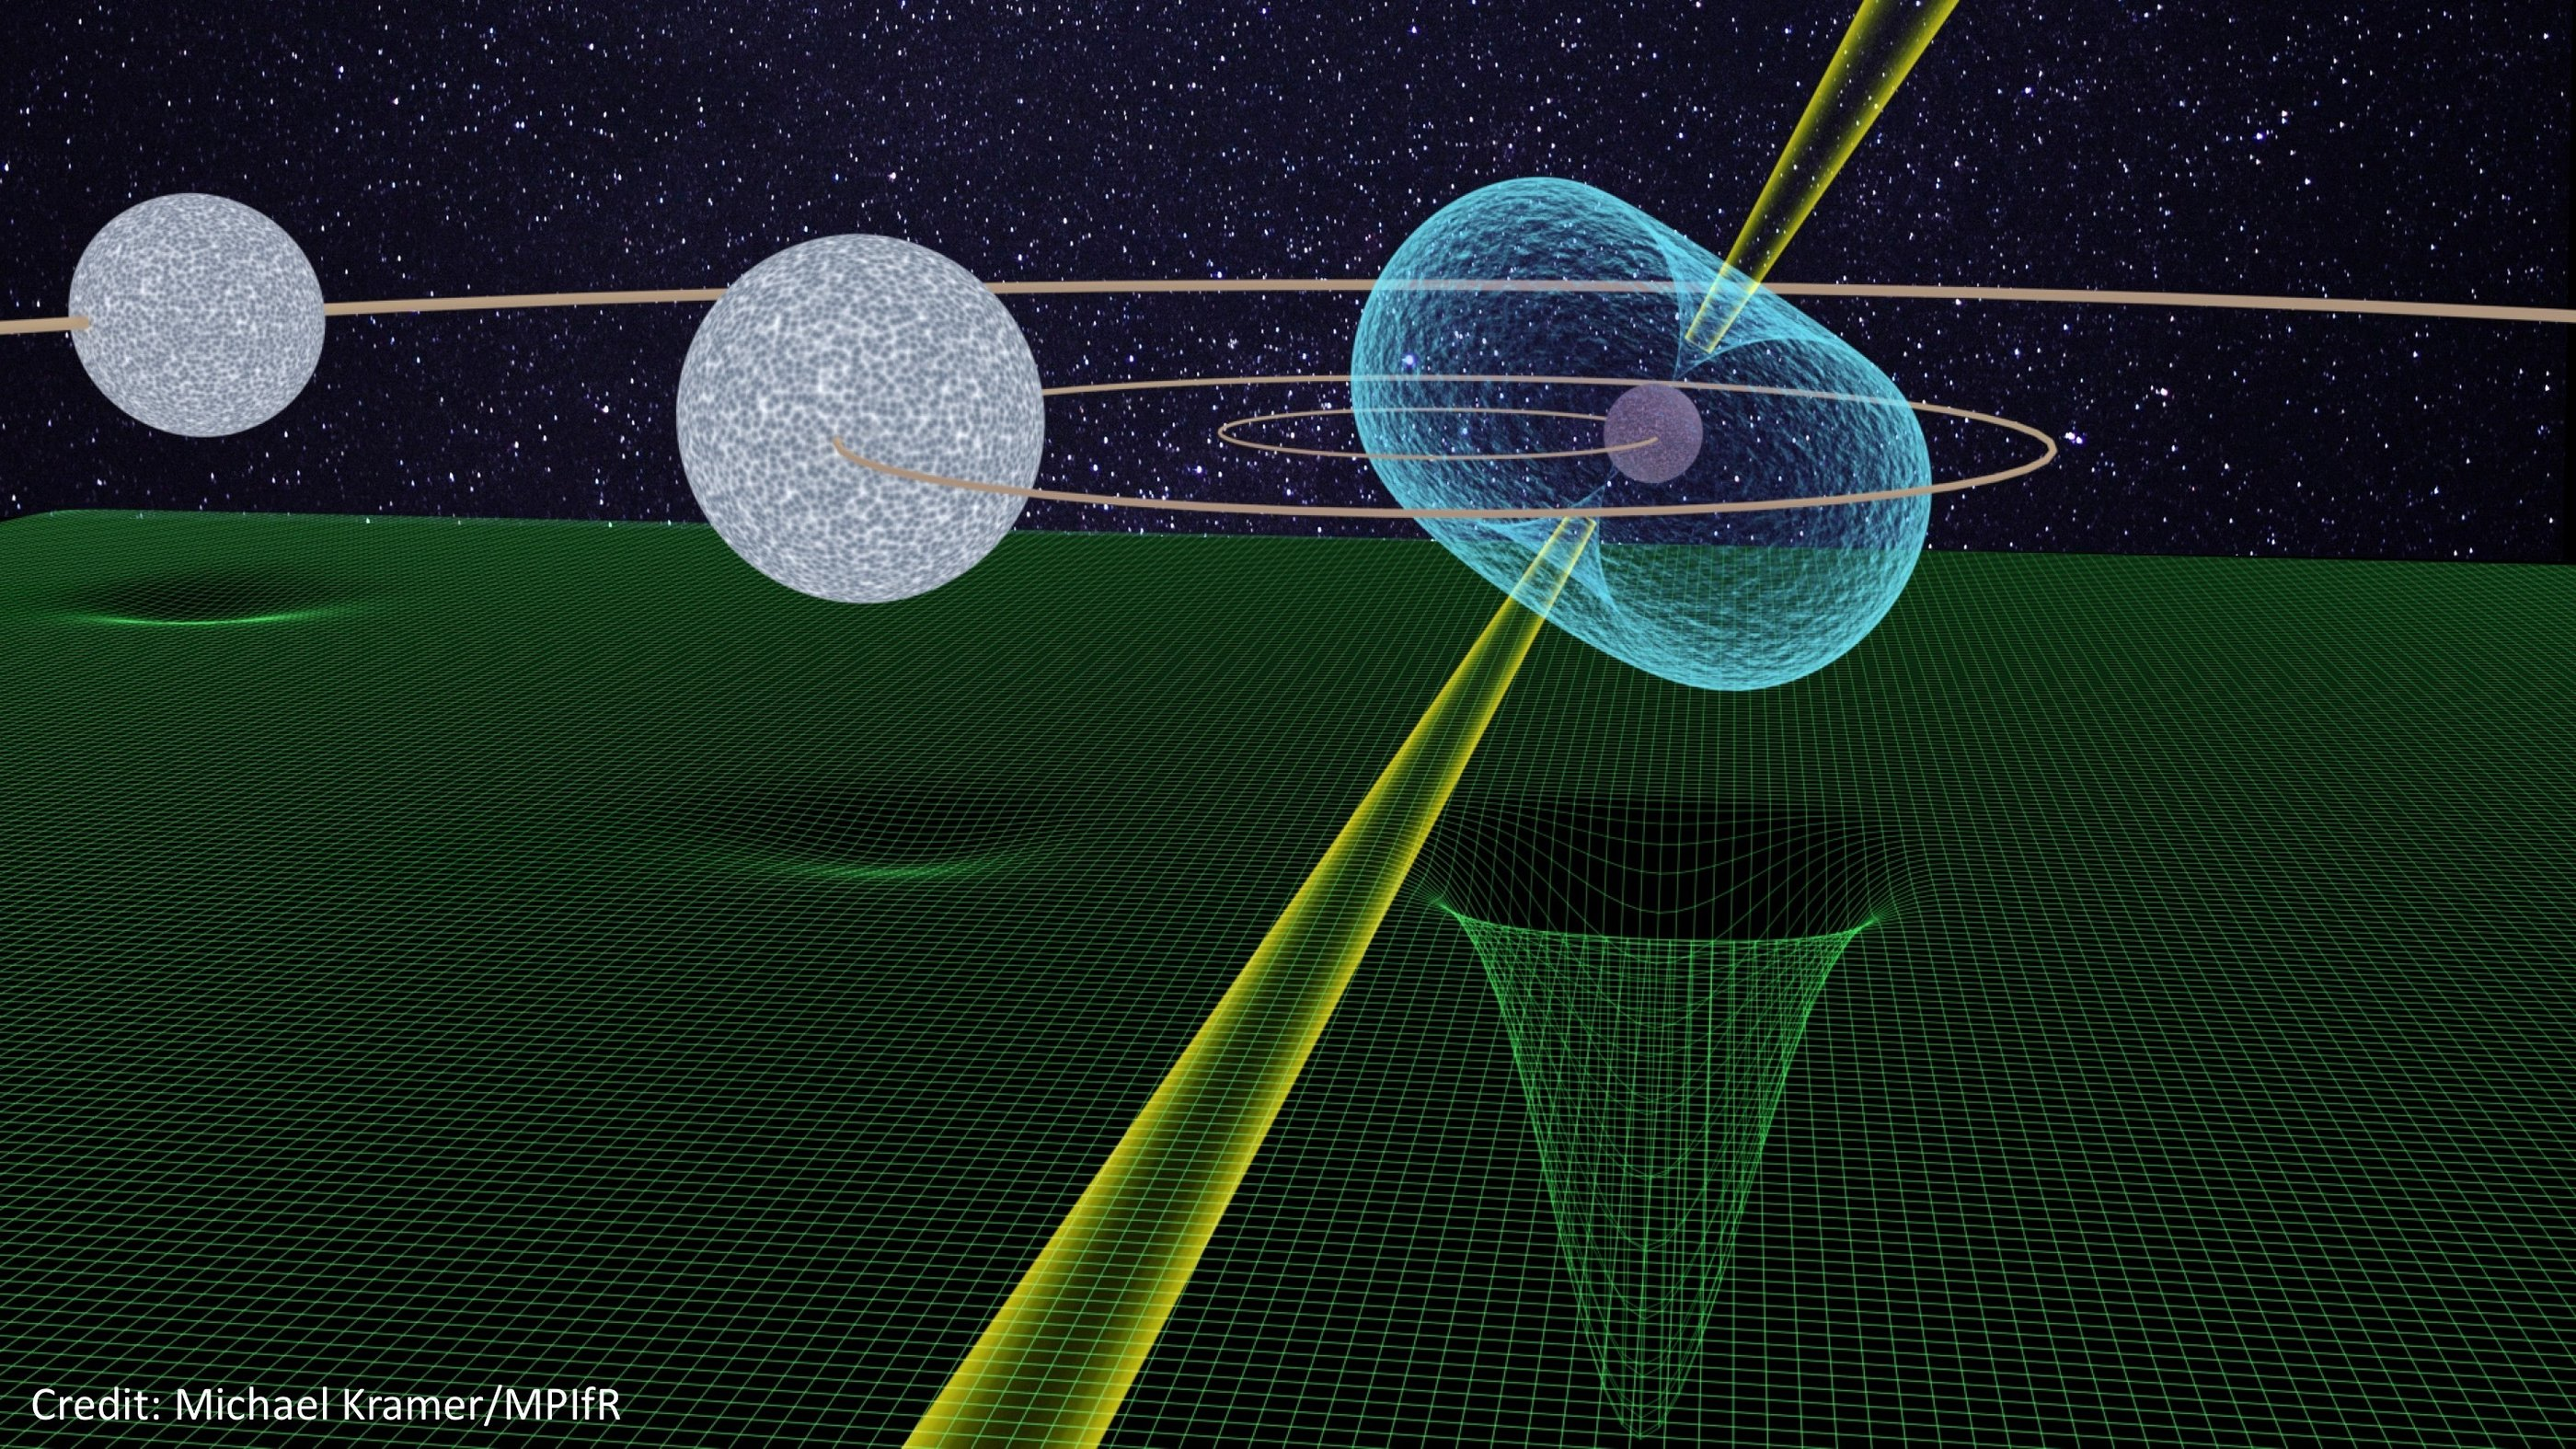 Einstein's core idea about gravity just passed an extreme, whirling test in  deep space | Live Science